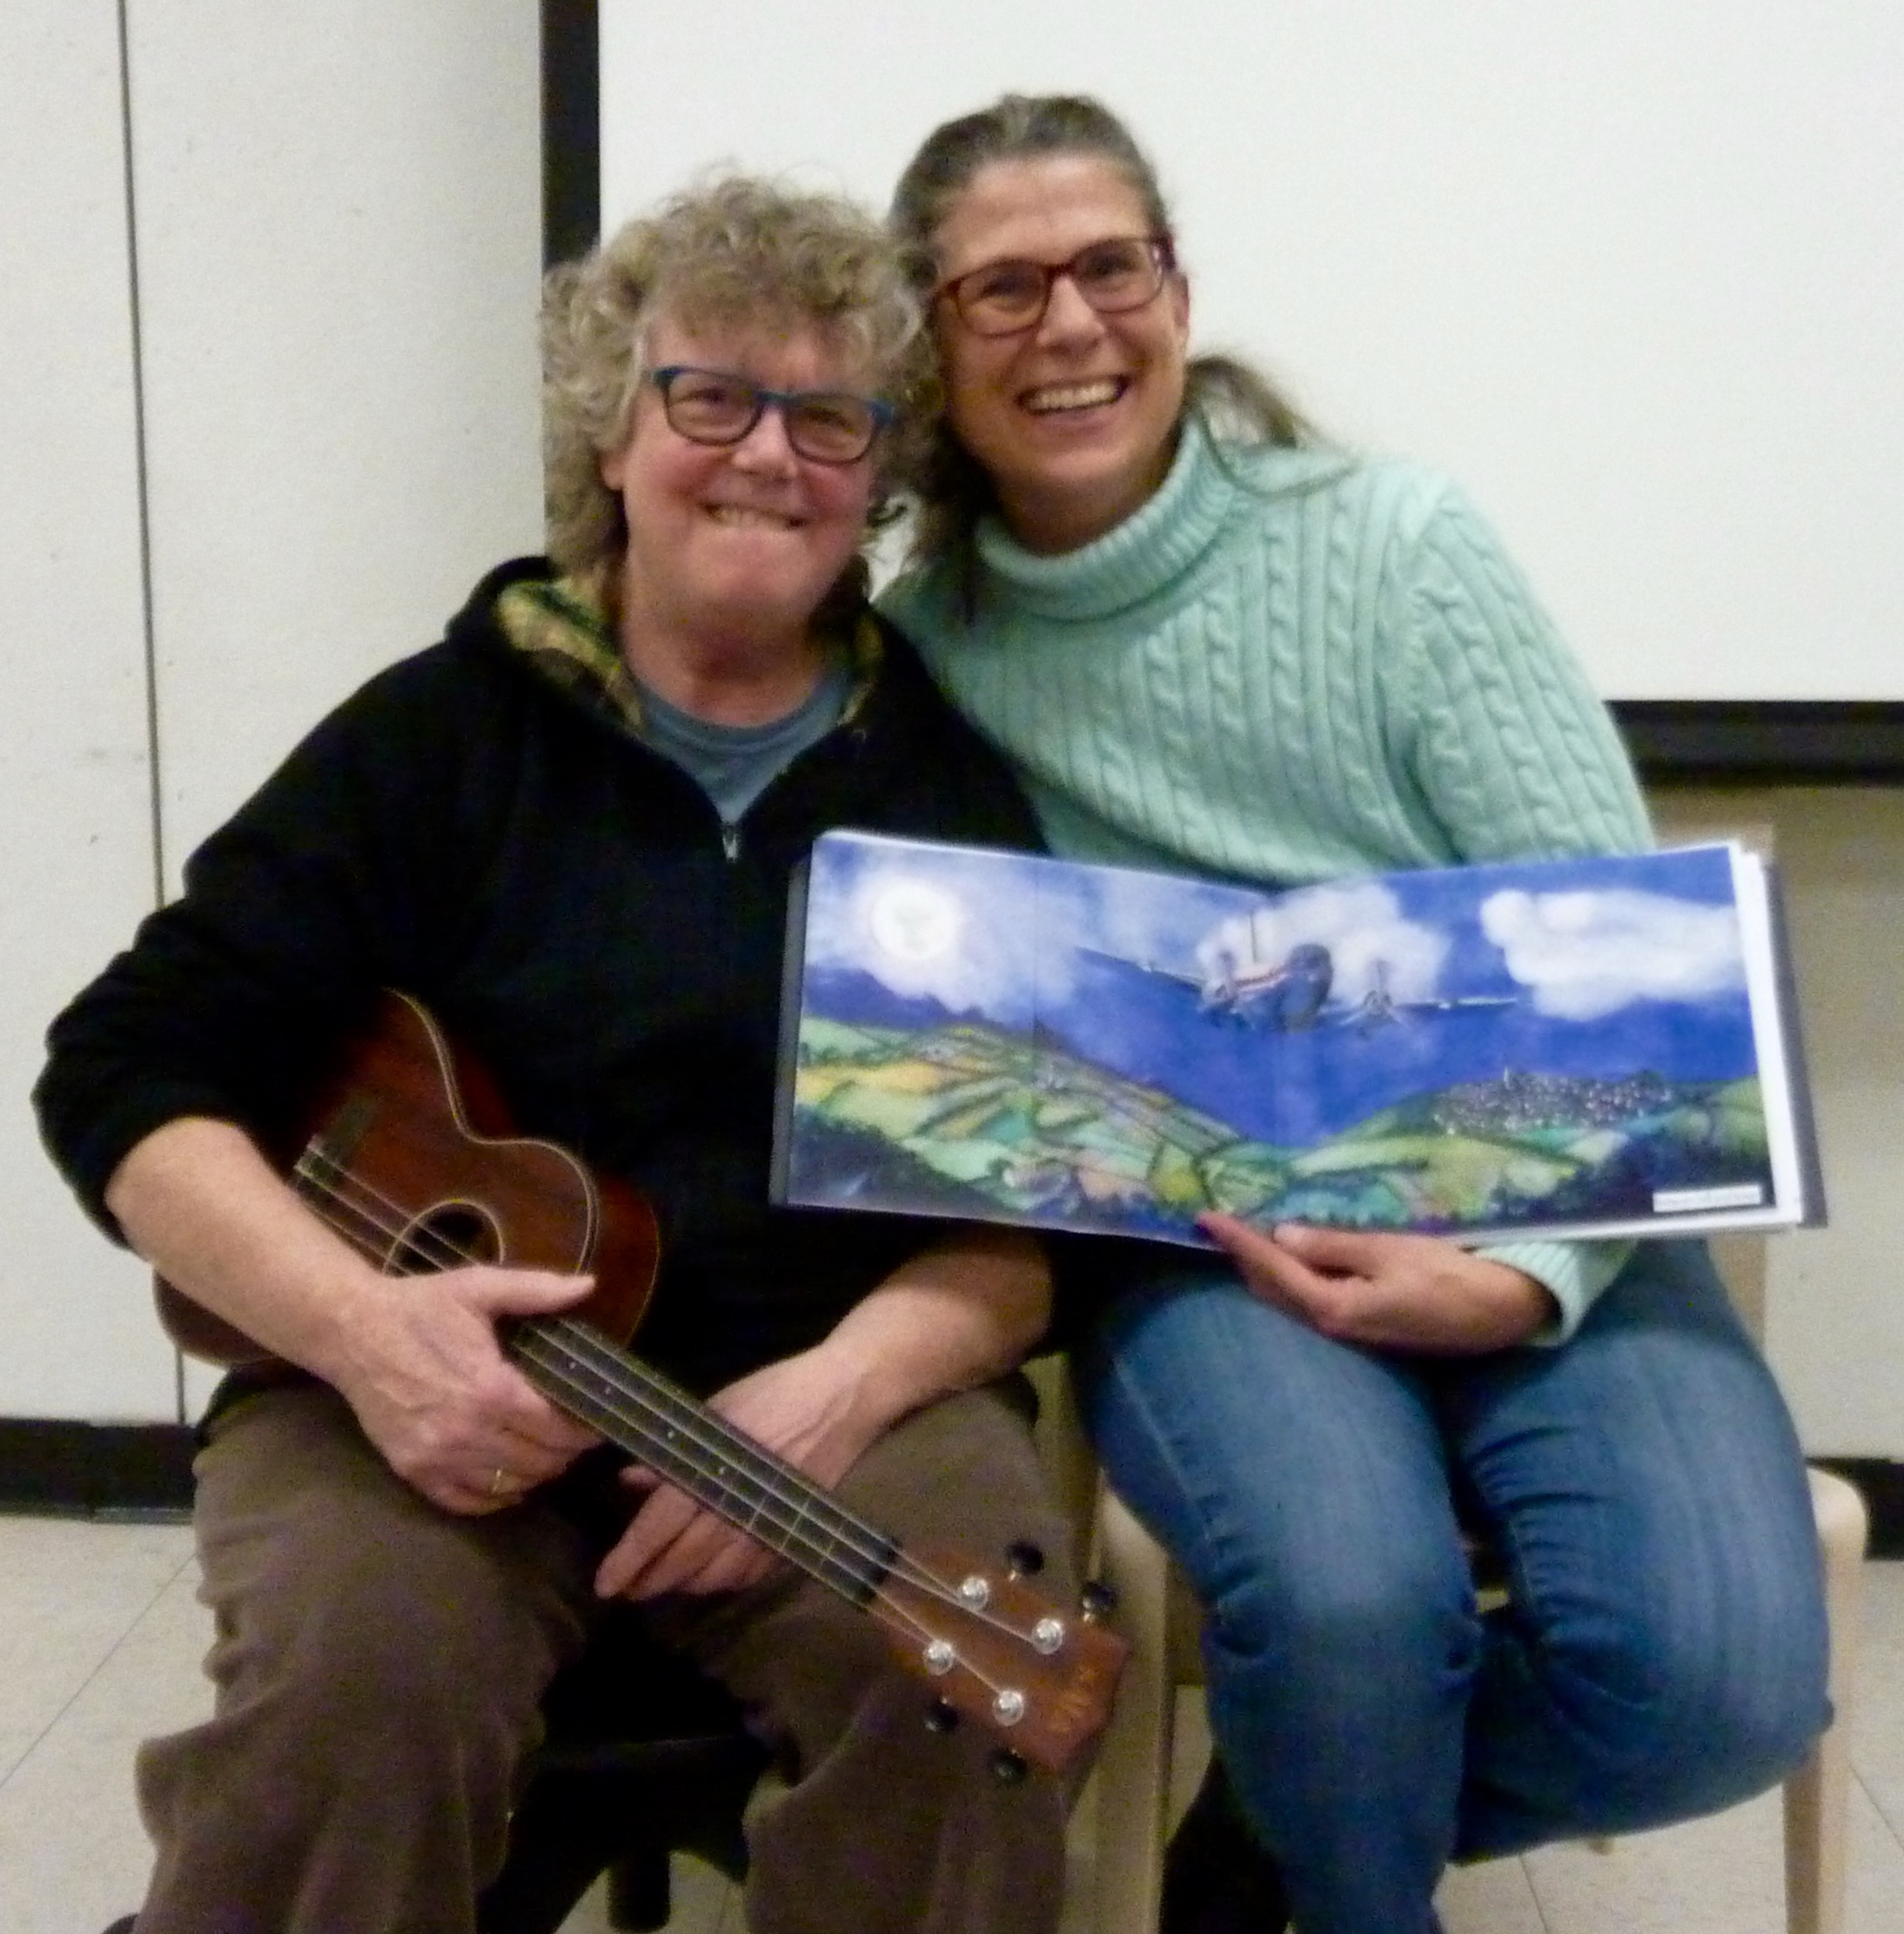 Cheryl Wheeler with her ukulele, and Manette with a color copy of her finished illustration inserted into the dummy.